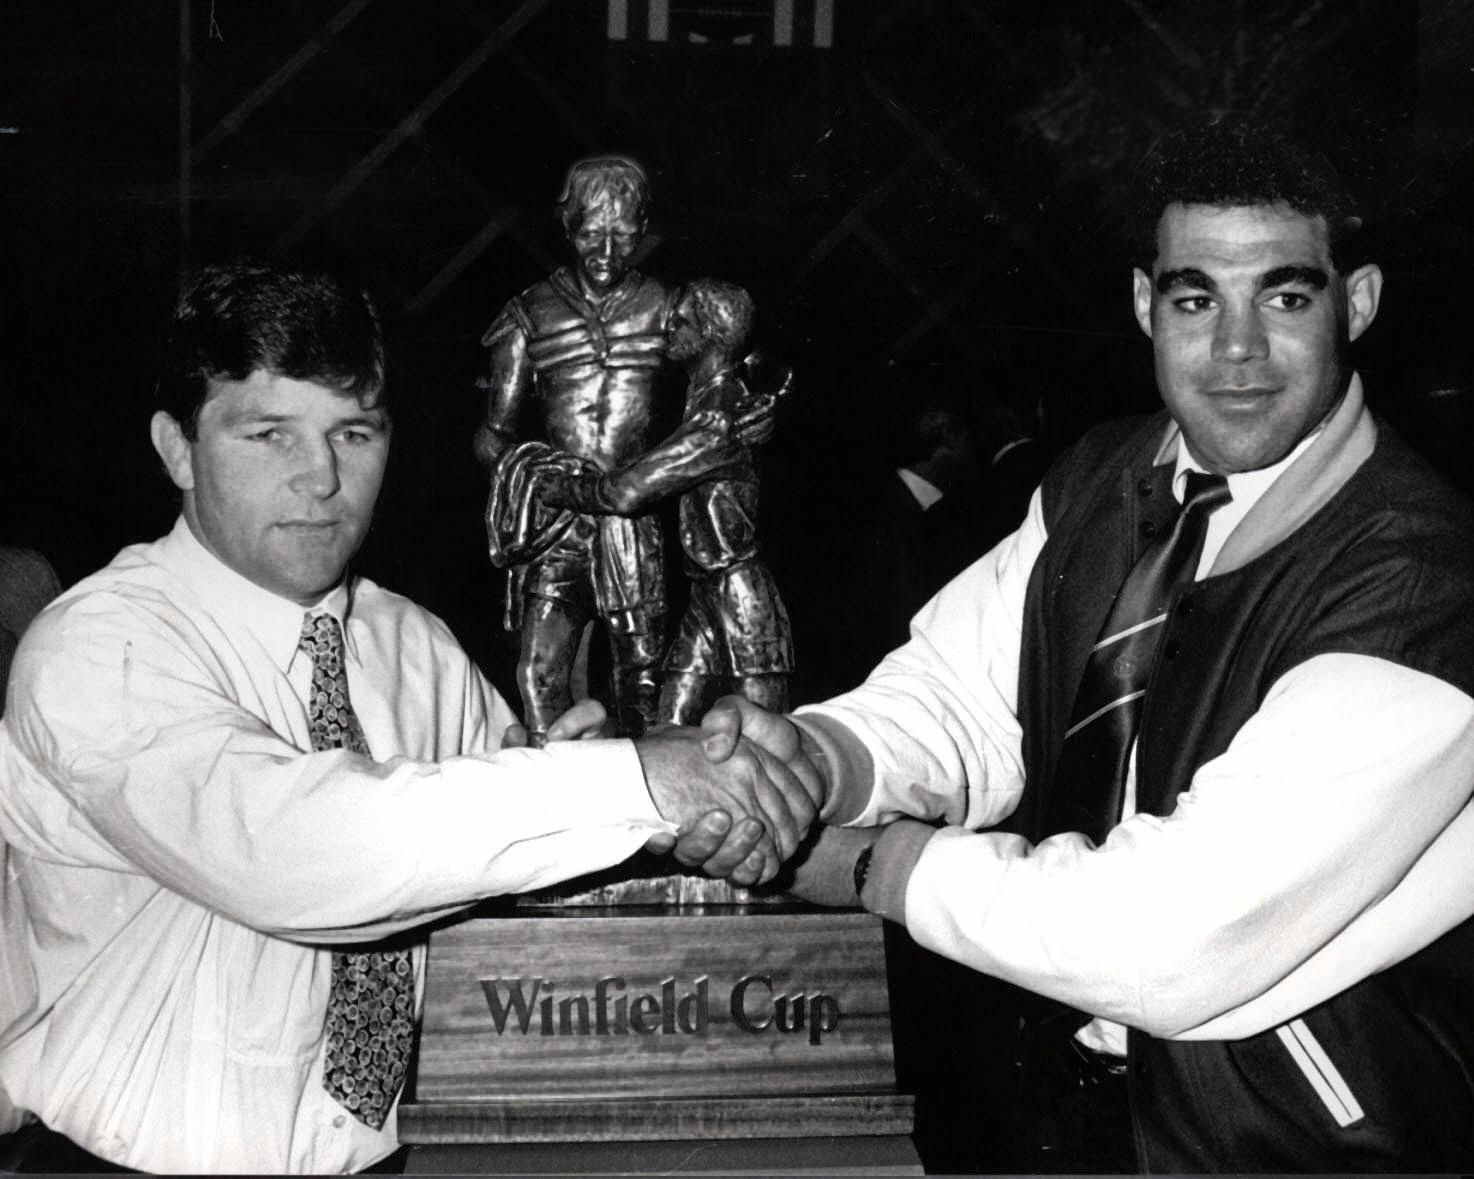 Captains Royce Simmons (L) from Penrith and  Mal Meninga from Canberra with the Winfield Cup trophy they would play for in the 1990 grand final.